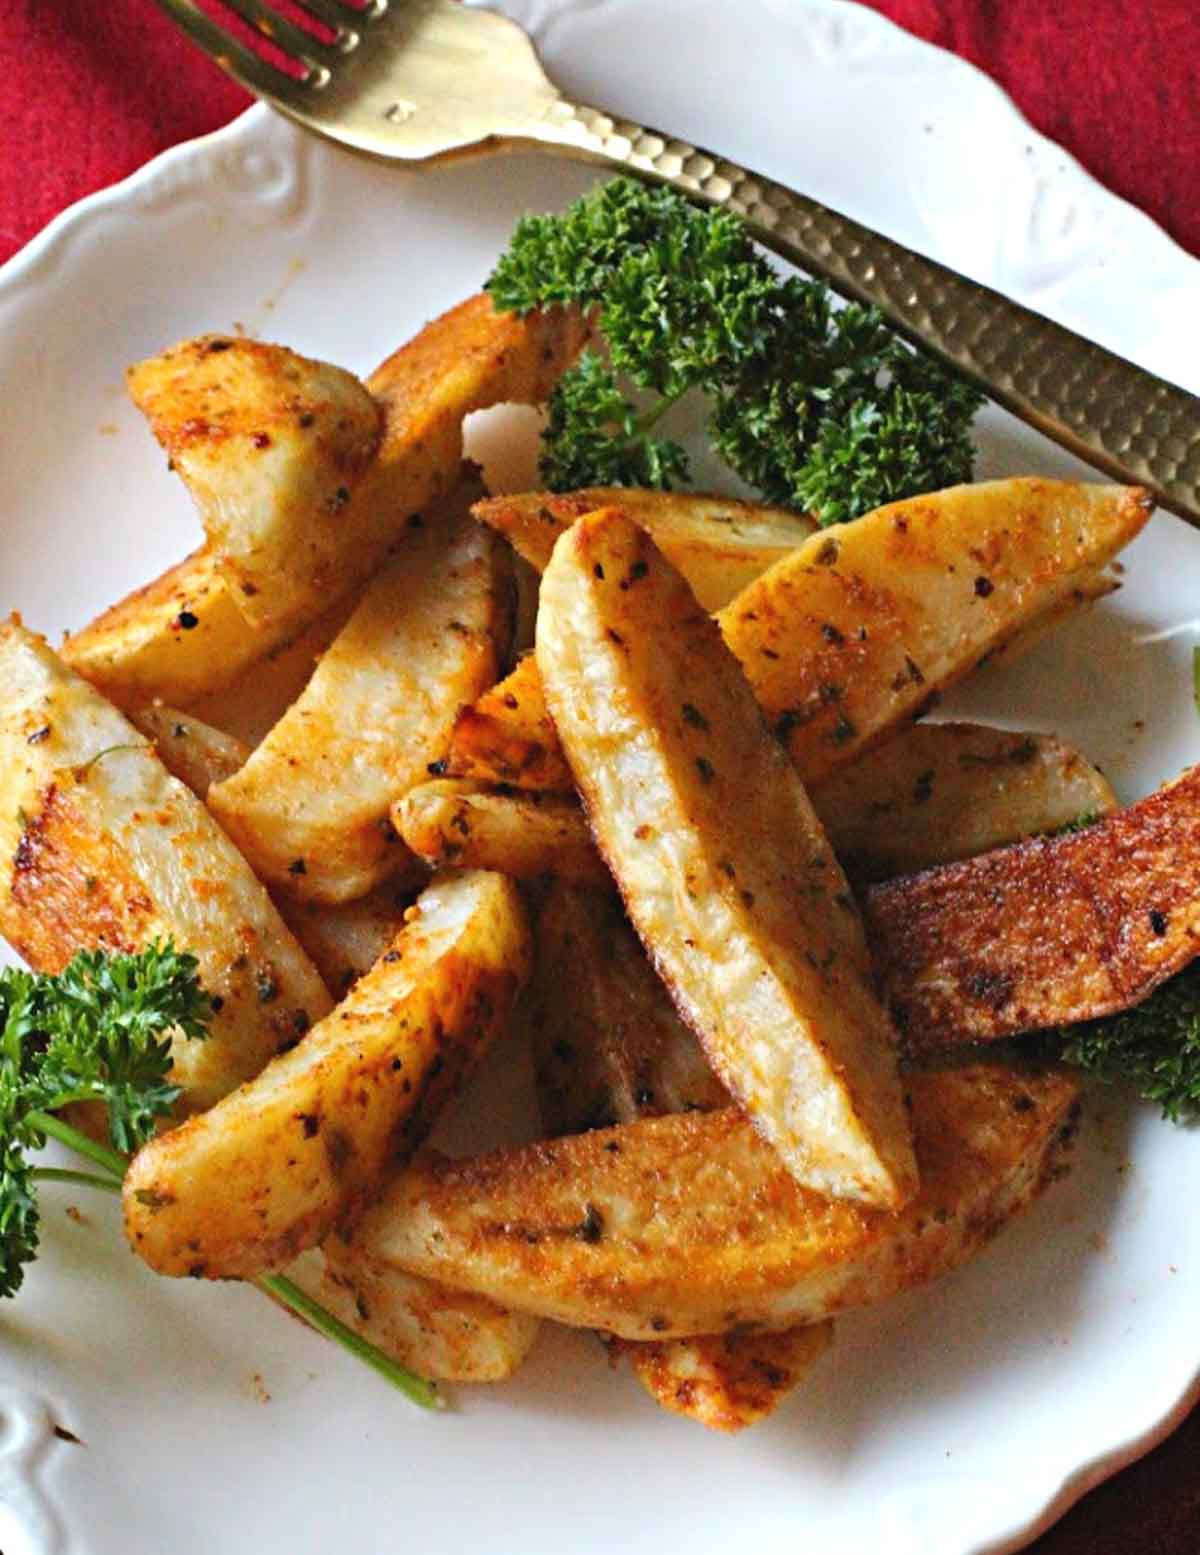 oven baked steak fries seasoned with paprika and garnished with parsley